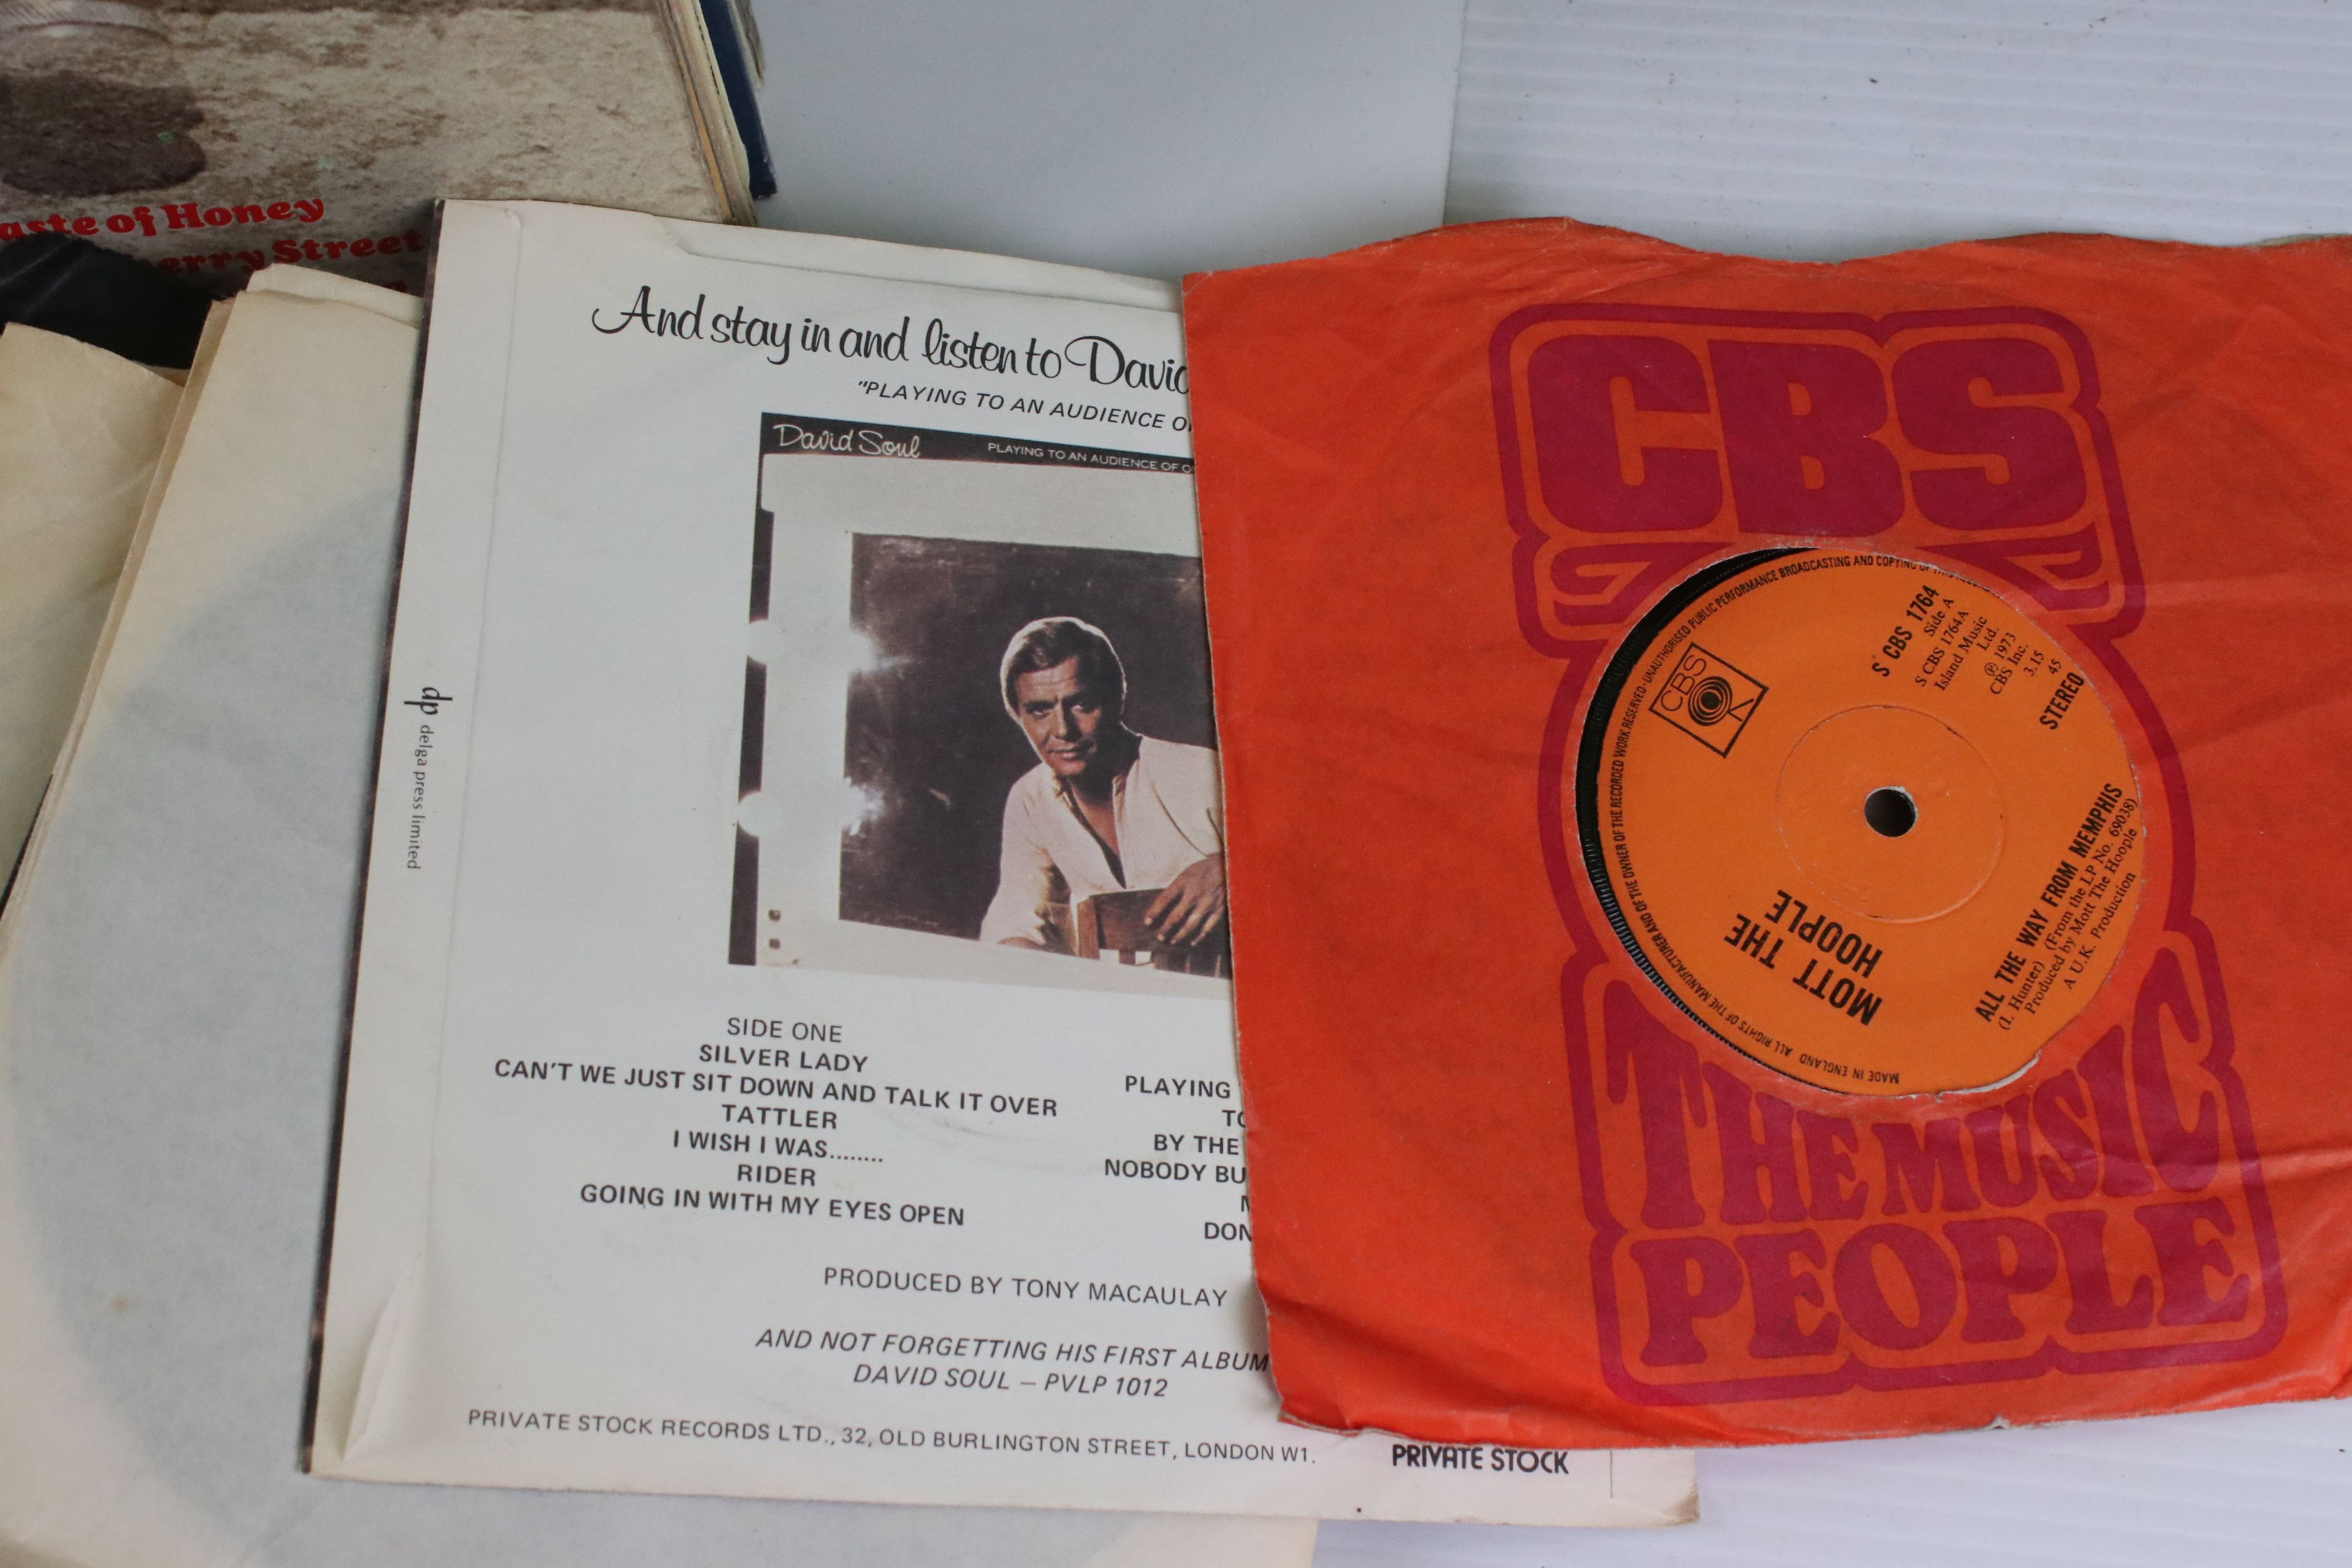 """Vinyl - Pop collection of approx 40 LP's and 100 7"""" singles to include Dire Straits, Paul Young, Cat - Image 3 of 6"""